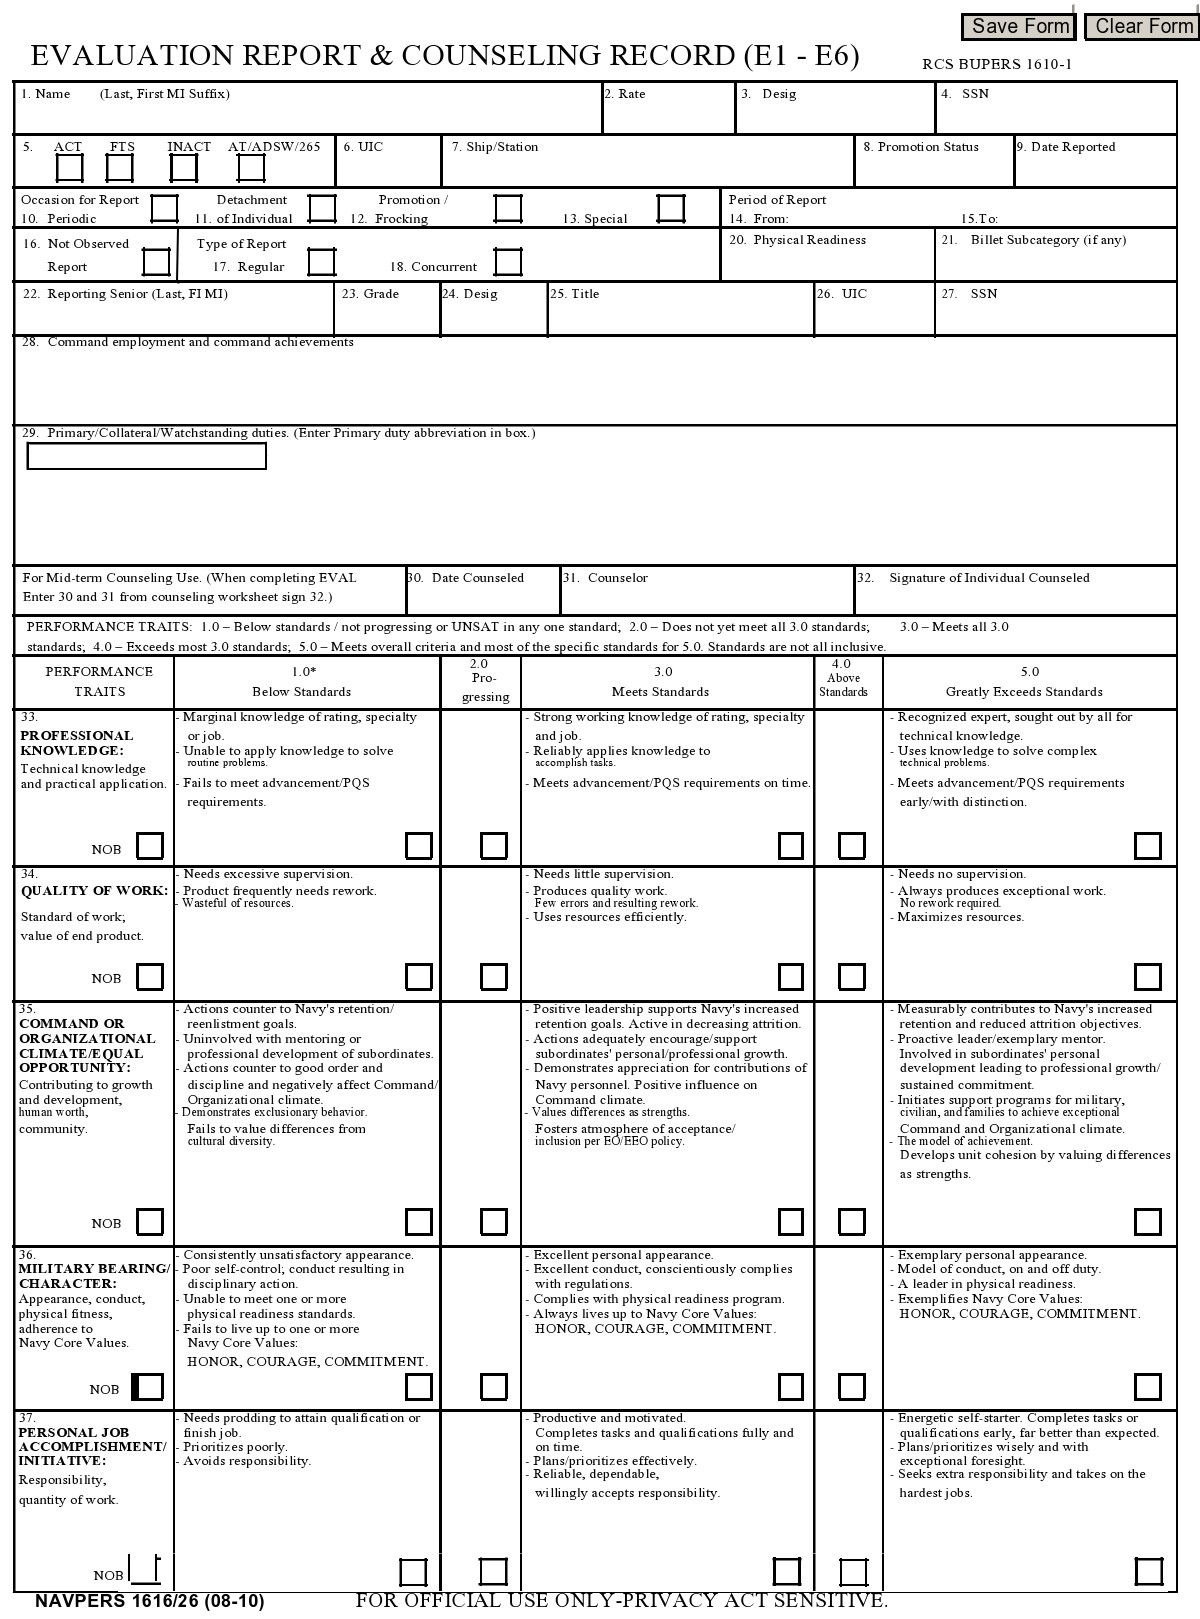 Free army counseling form 15